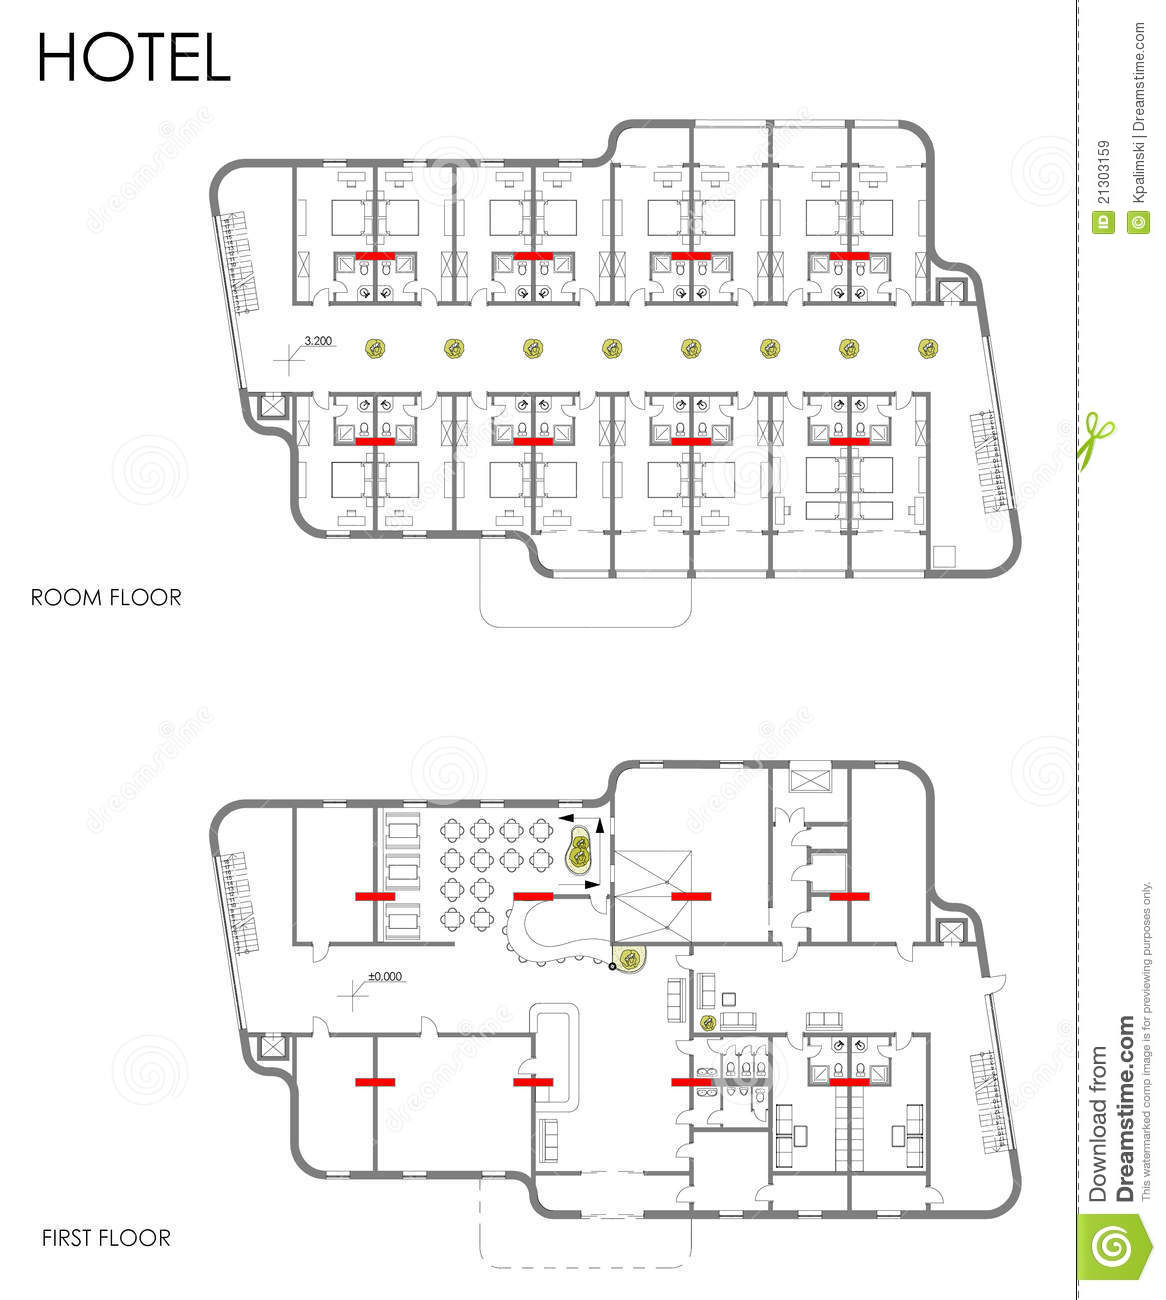 Hotel drawing plan stock illustration illustration of for Hotel plan design